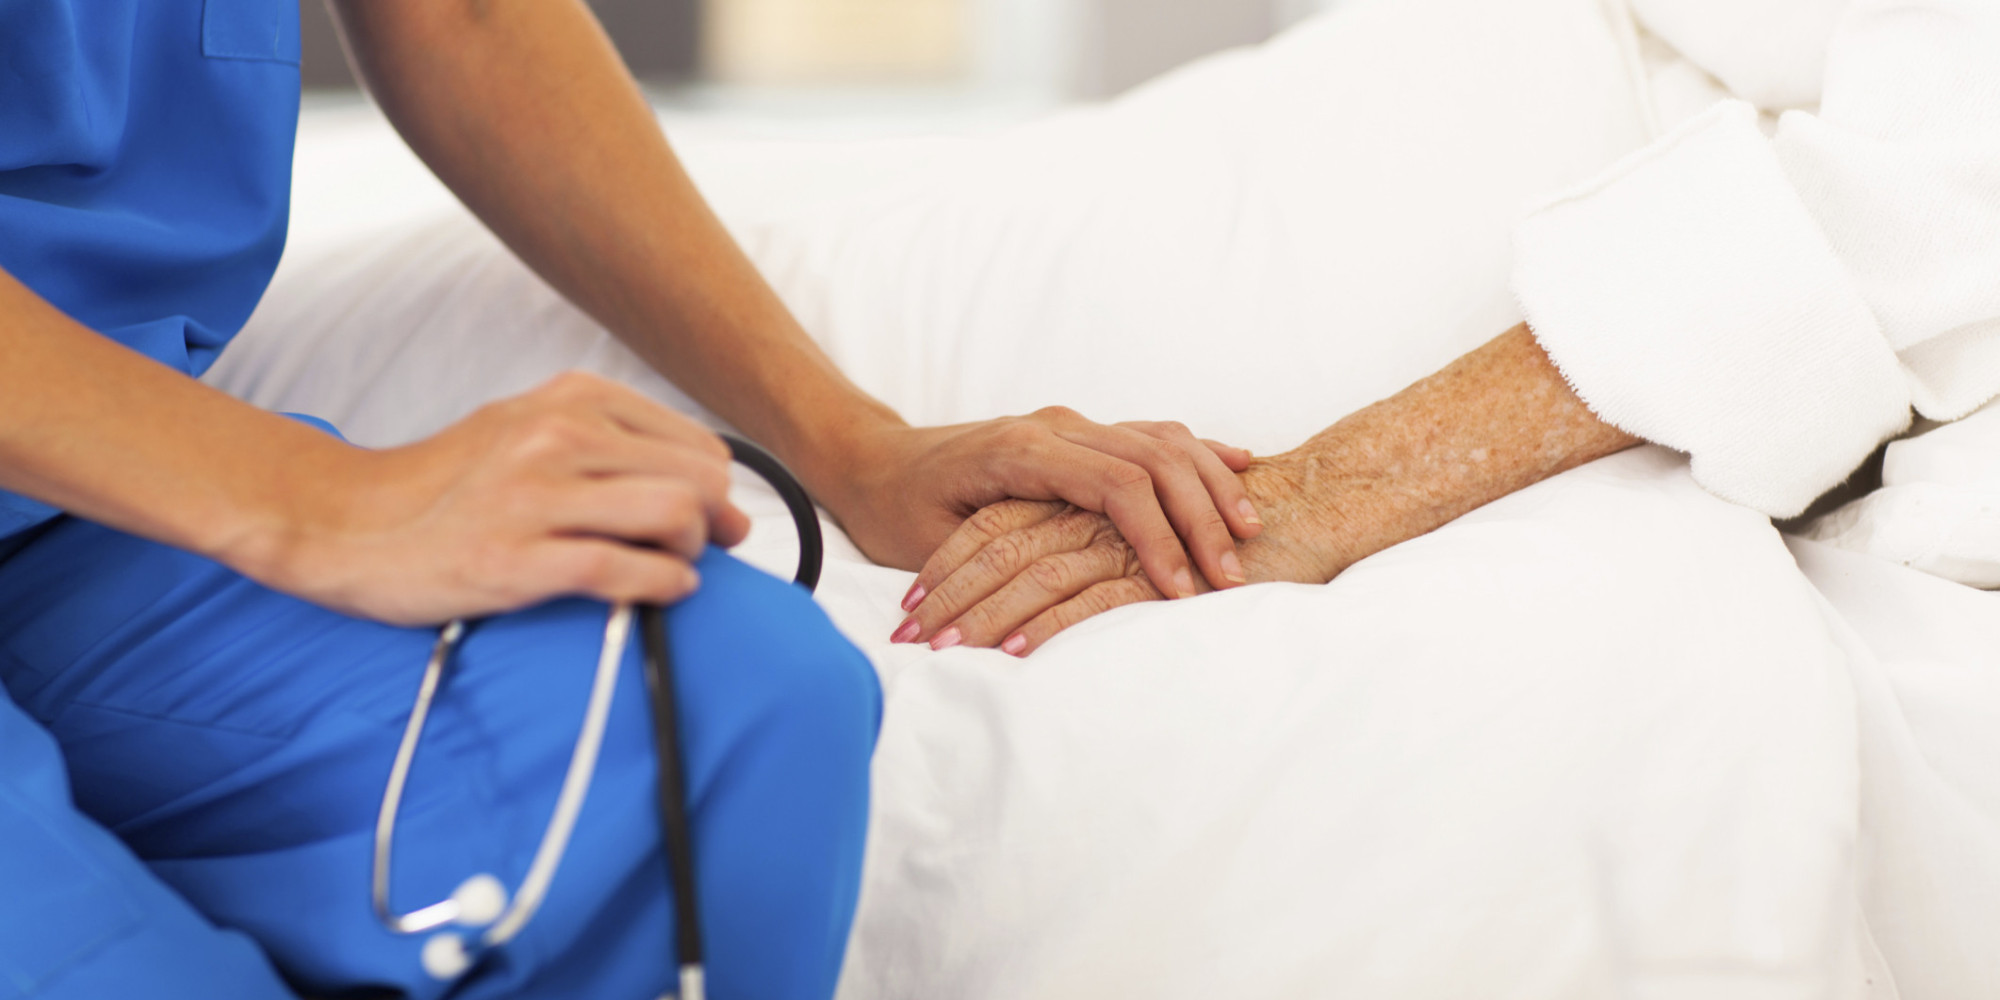 An argument in favor of assisted suicide in the field of medicine